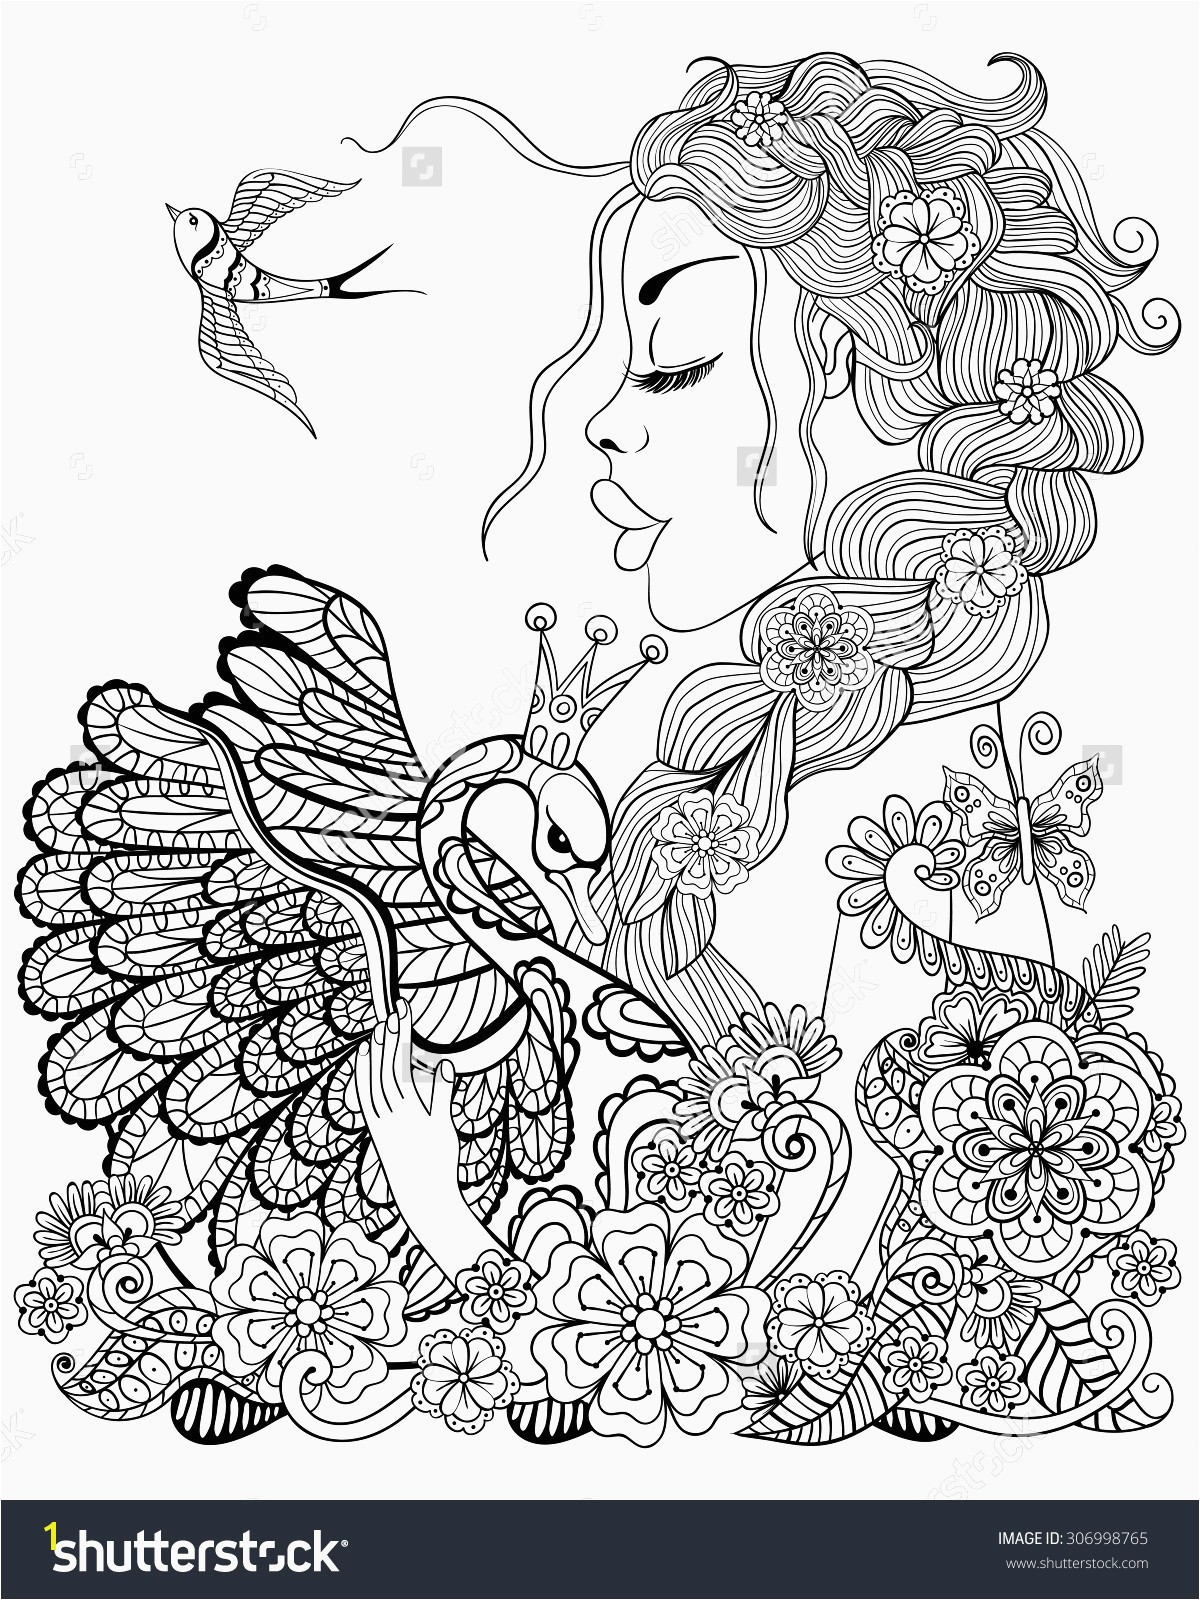 Mlp Coloring Pages Inspirational Adult Coloring Page Best S S Media Cache Ak0 Pinimg 736x 0d 71